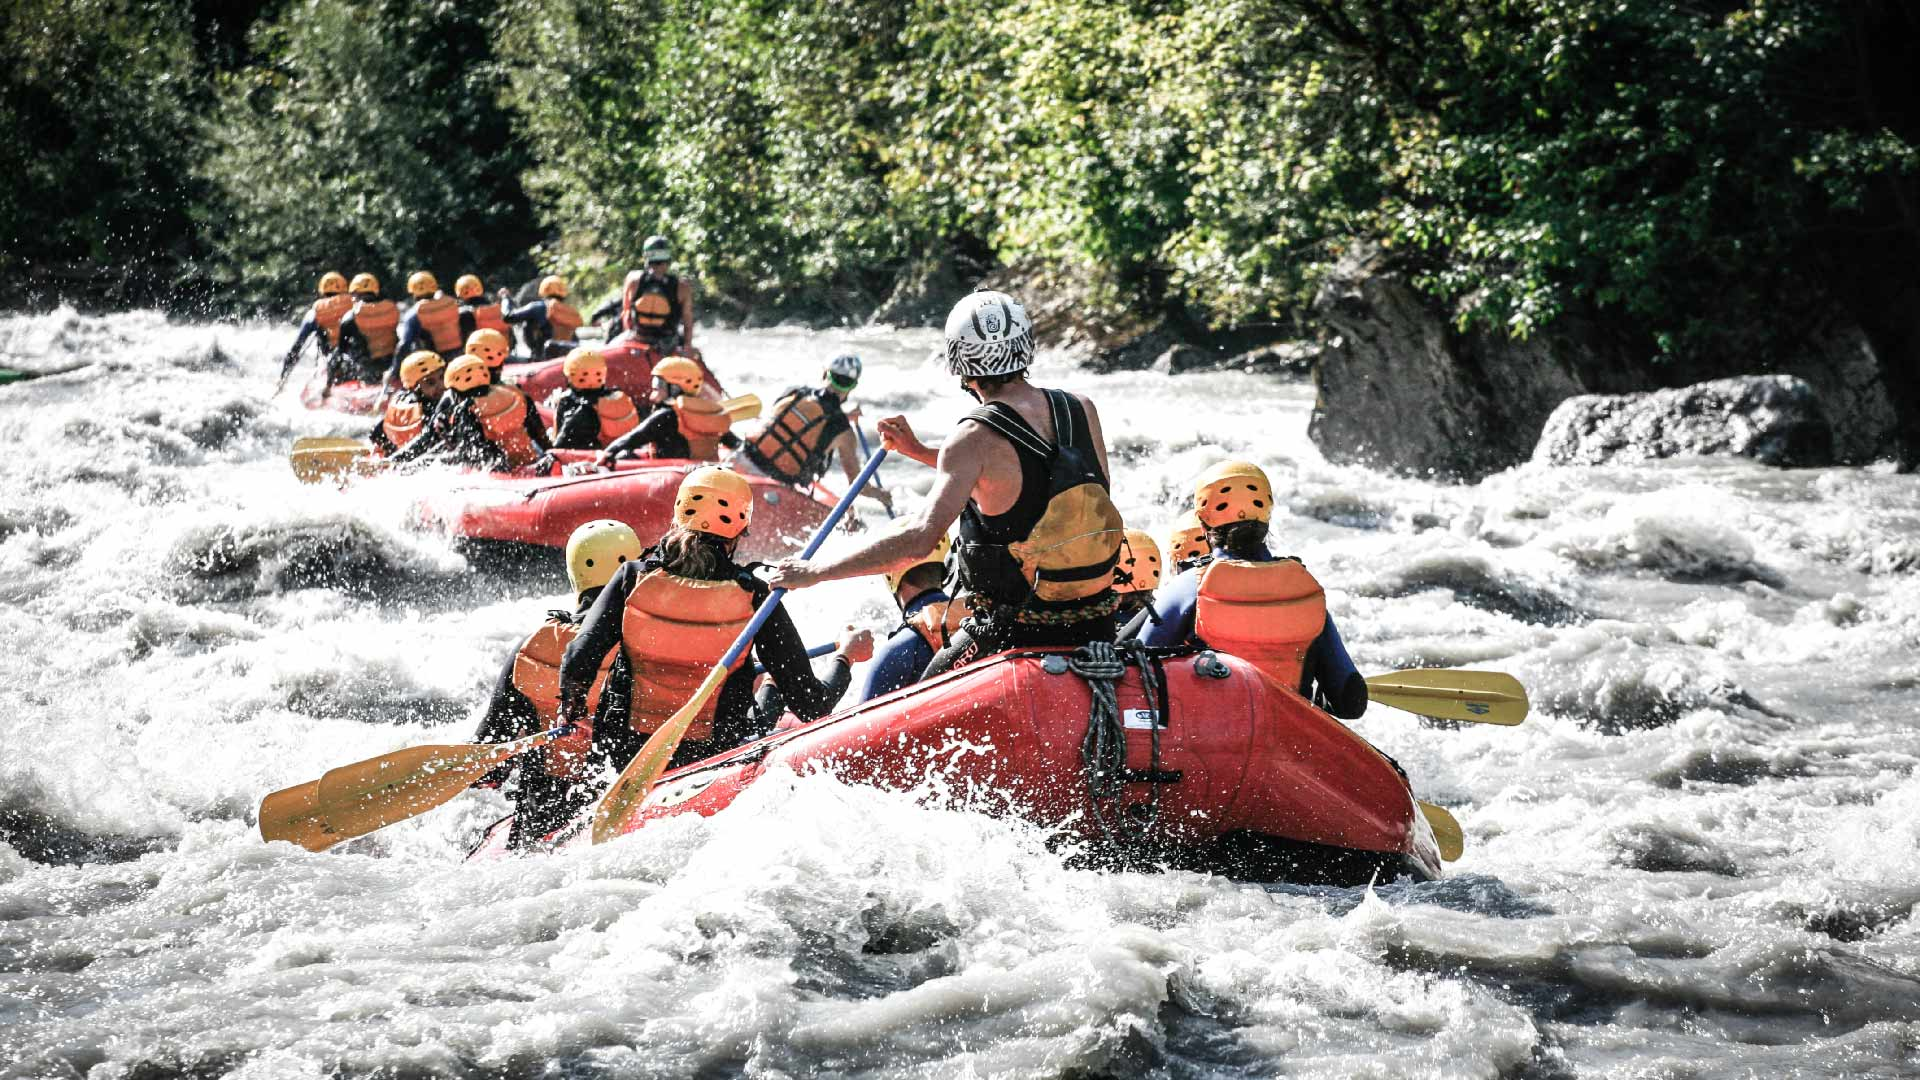 river-rafting-sommer-boote-rafting-gruppen-adventure